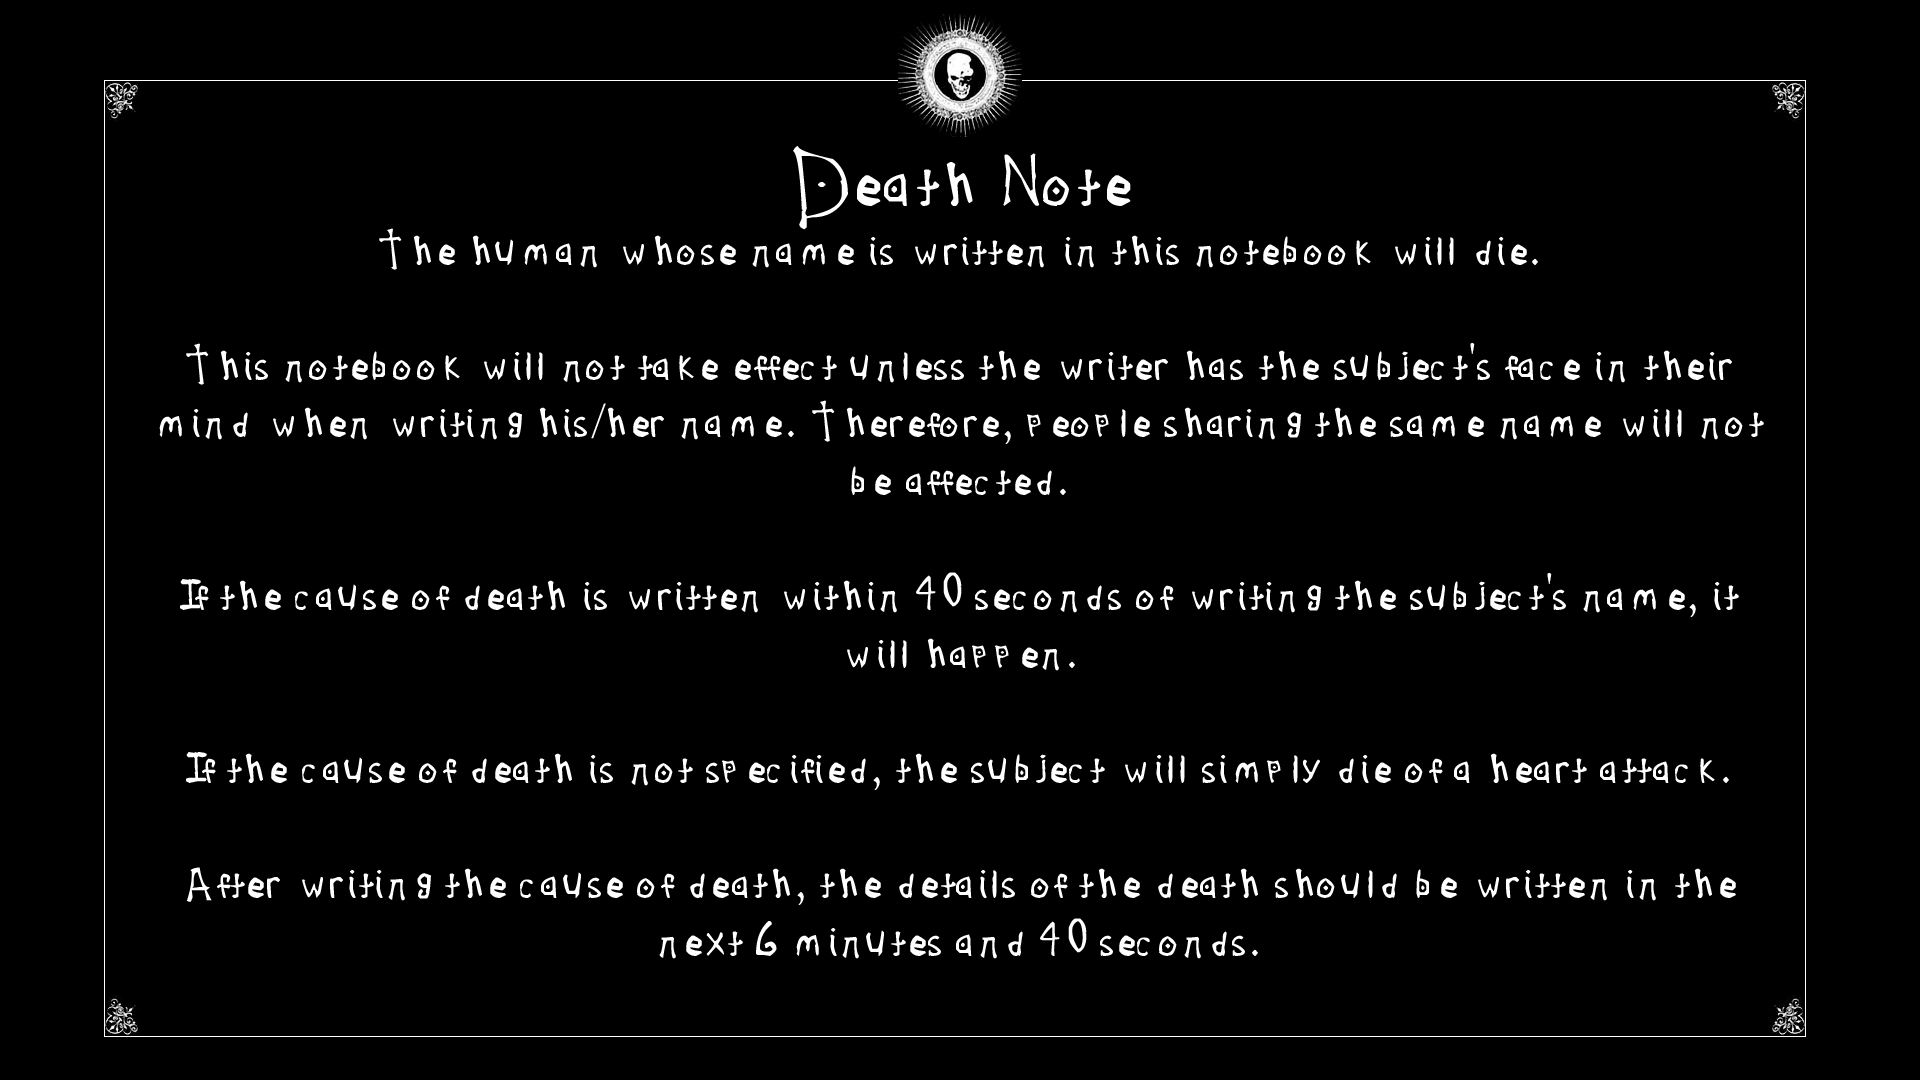 Image death note awesome full hd wallpaper desktopg head death note awesome full hd wallpaper desktopg thecheapjerseys Choice Image